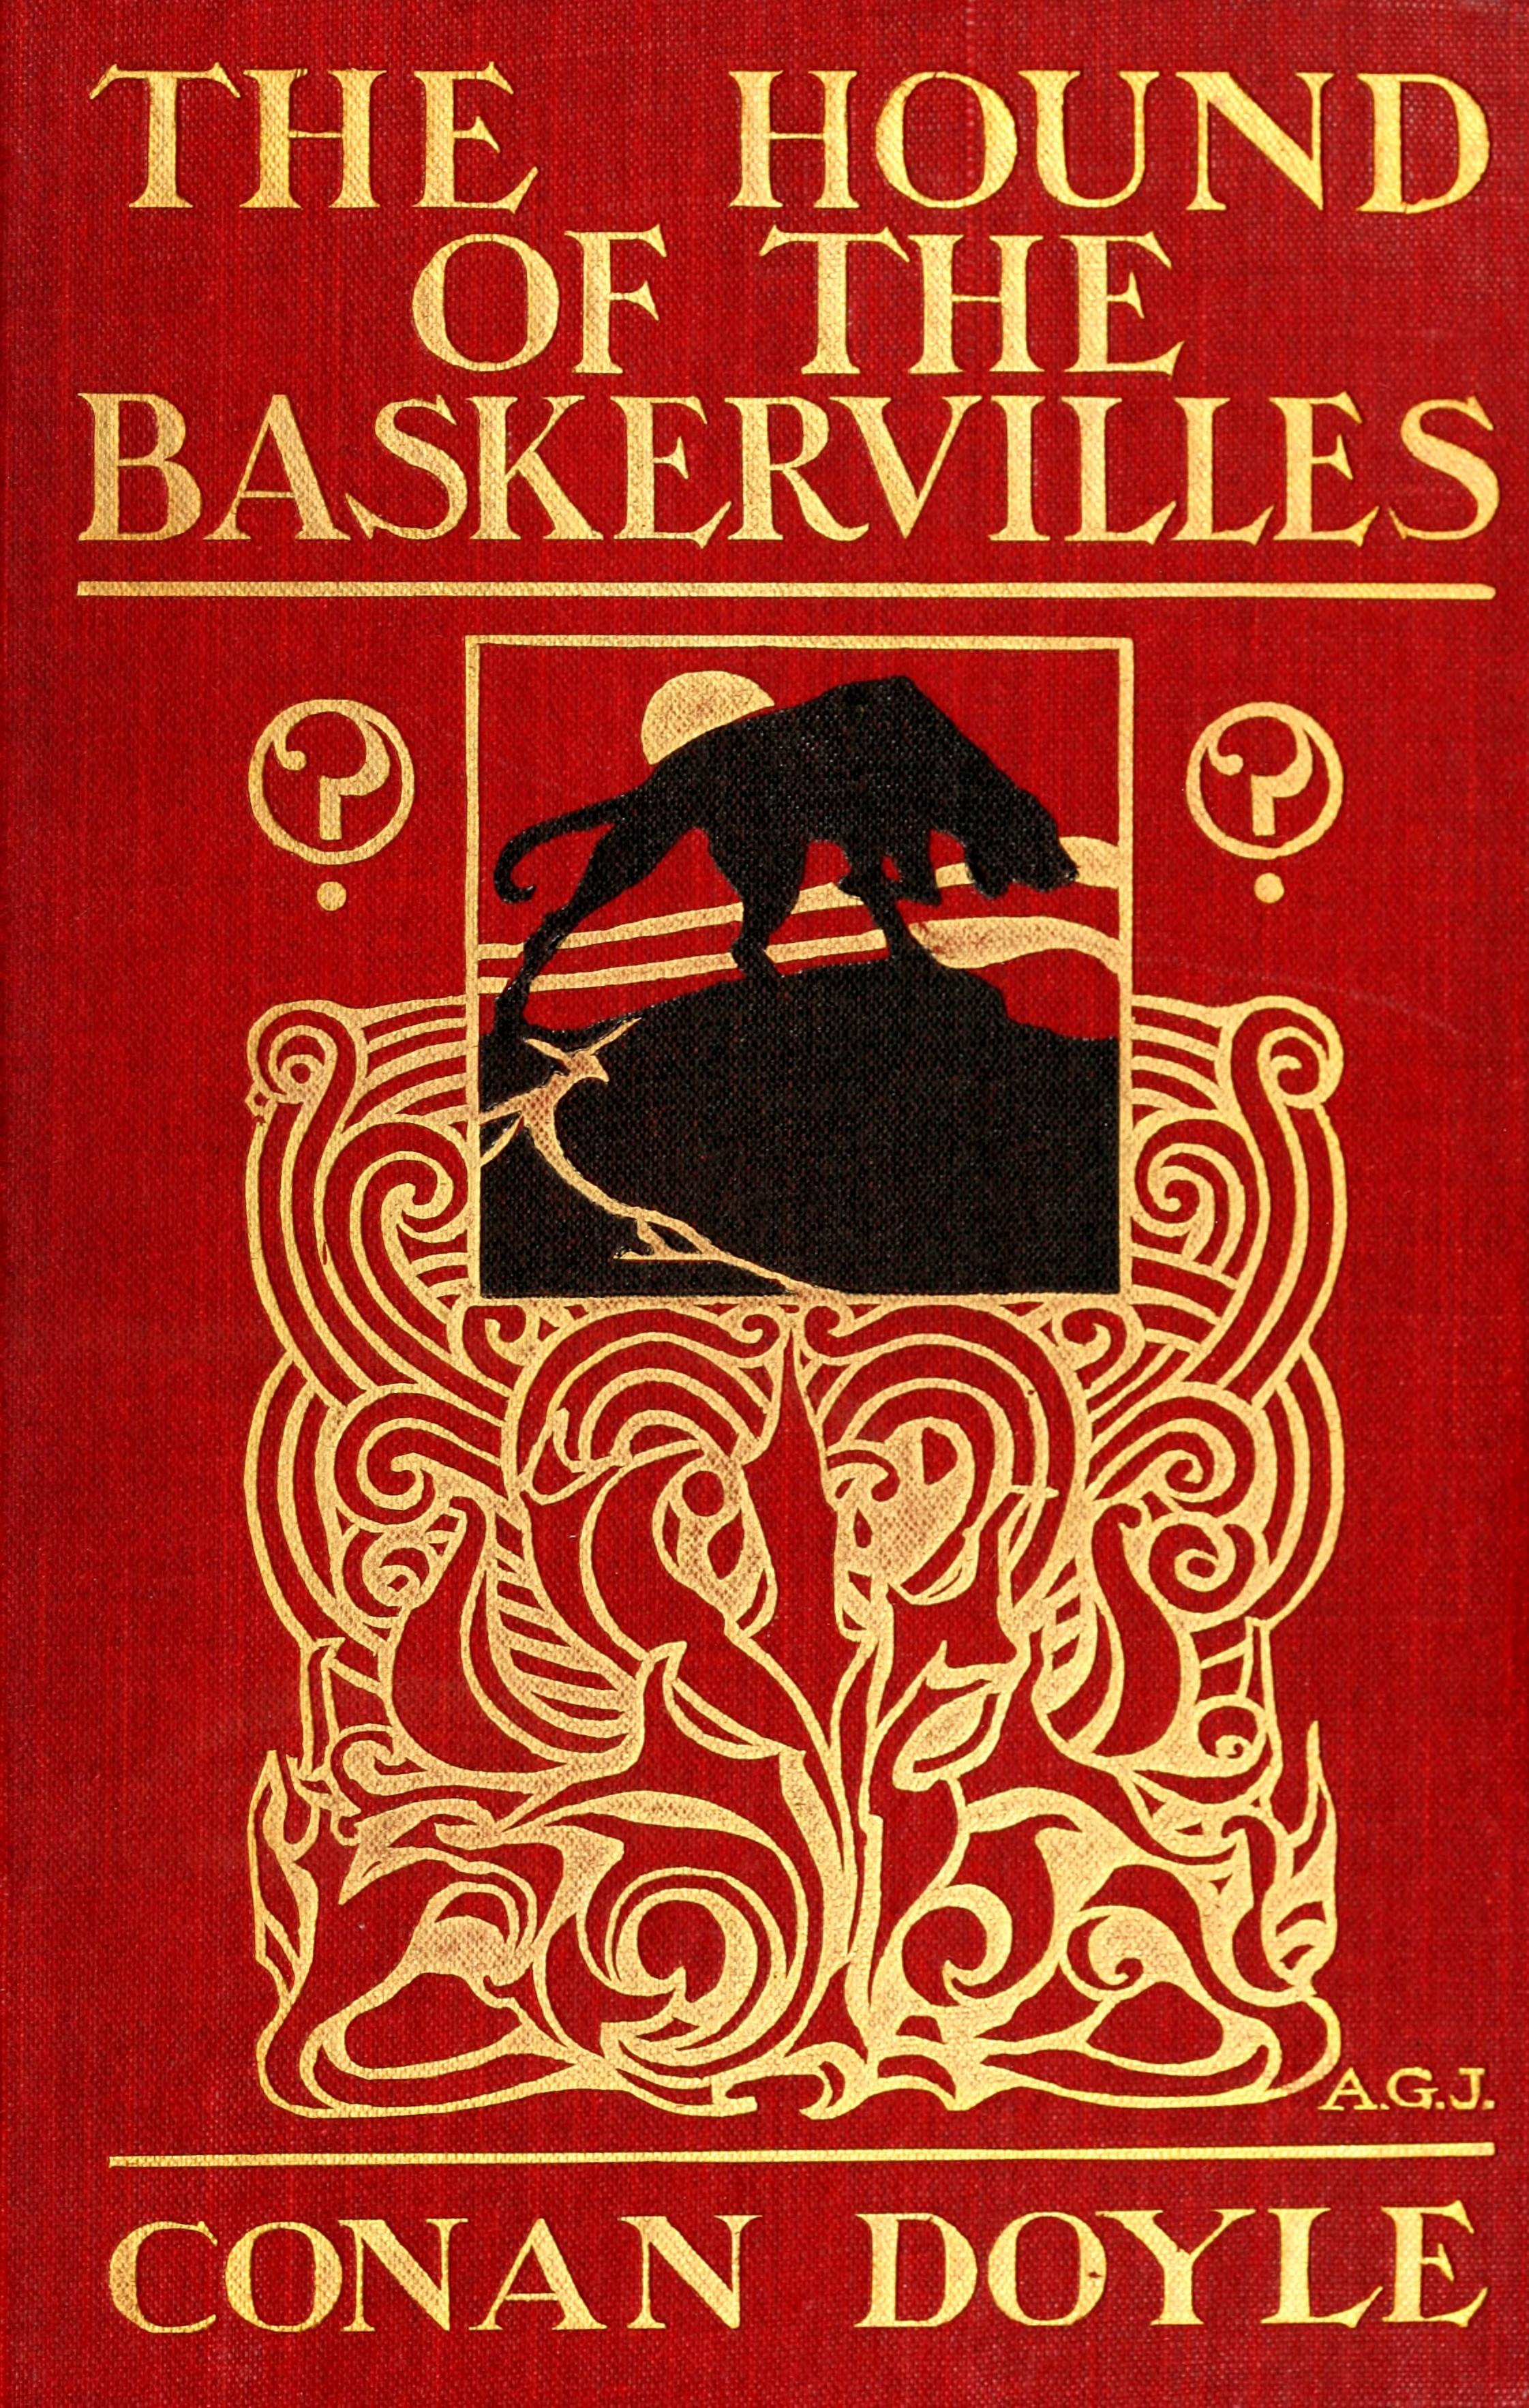 Arthur Conan Doyle's The Hound of the Baskervilles